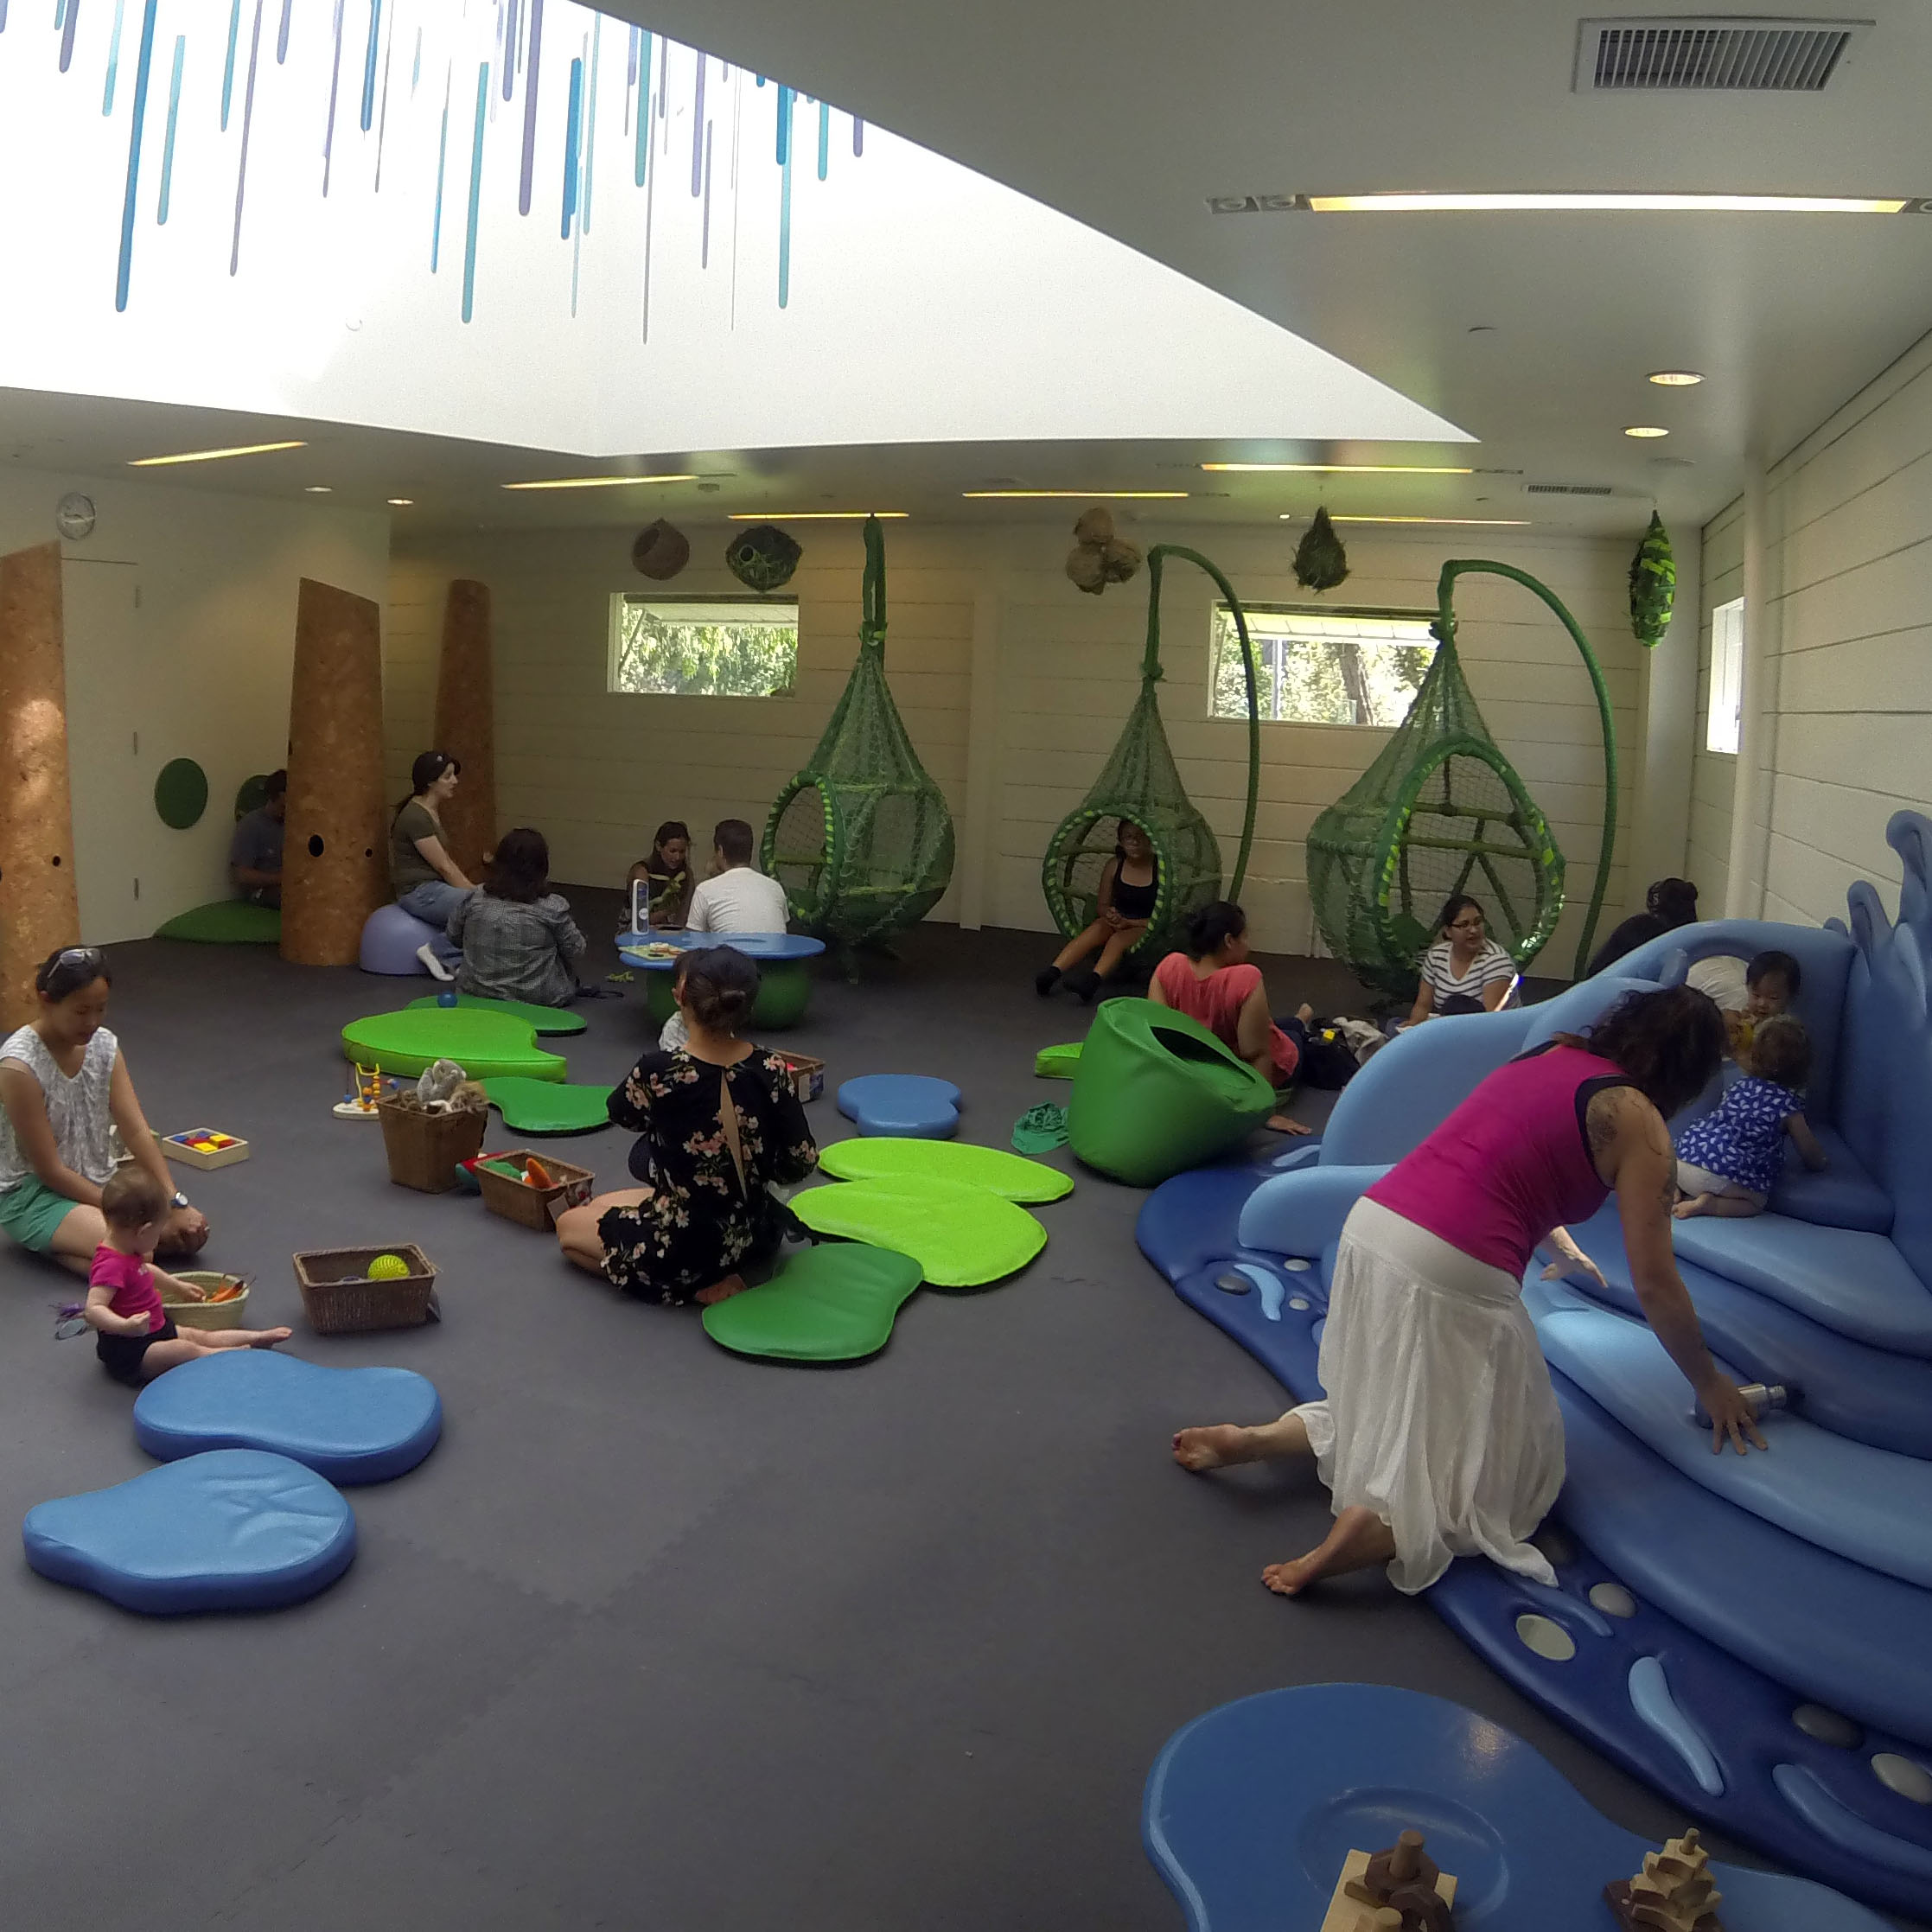 Kidspace Children's Museum : Safe Nature-inpired Indoor Play space  Pasadena, CA